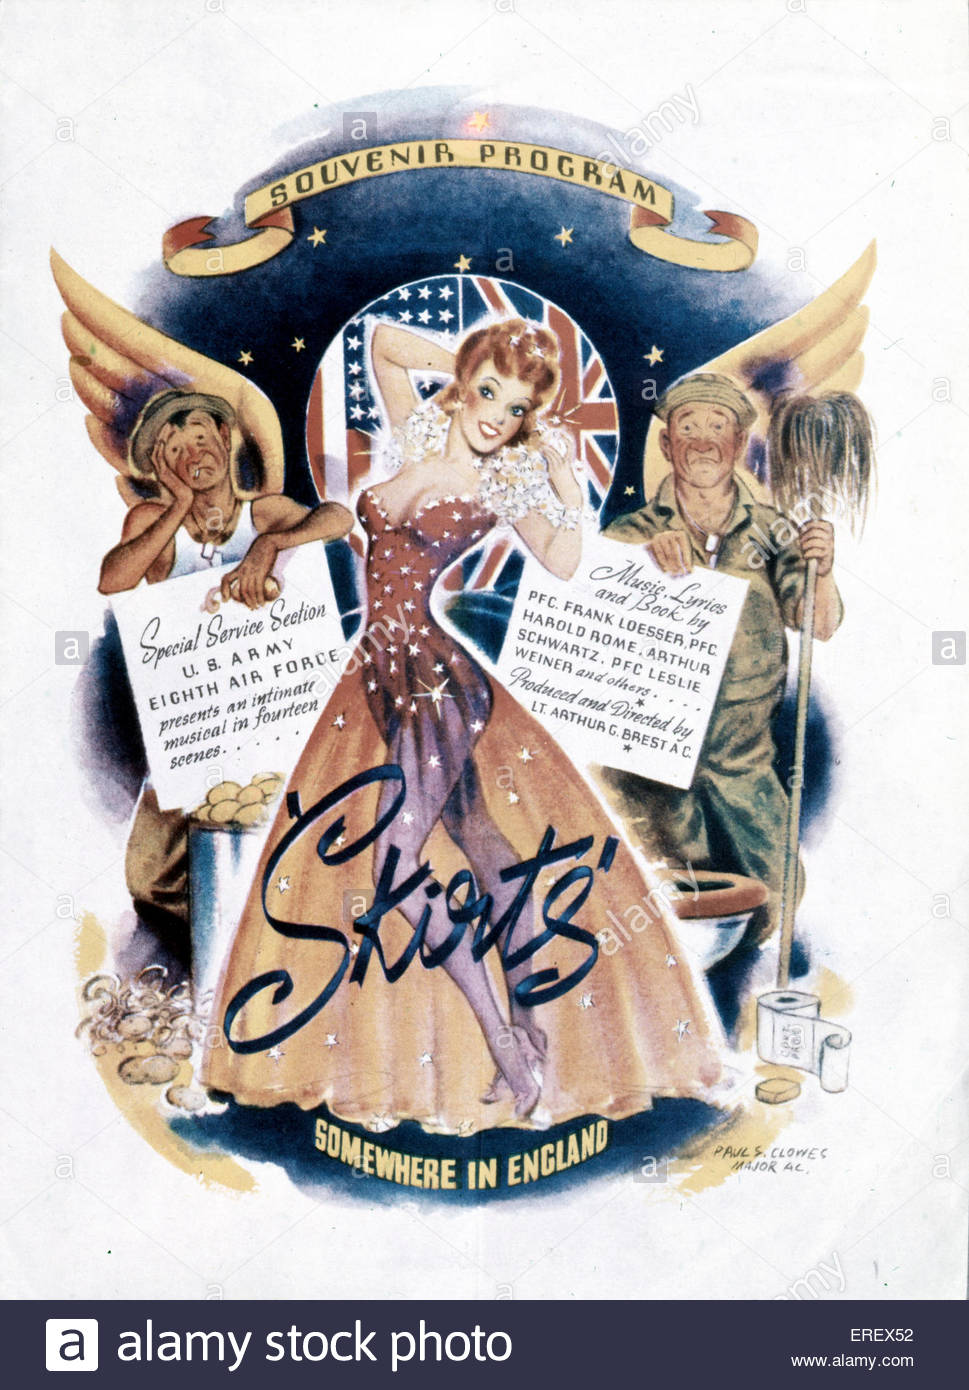 Skirts - World War 2 musical review. Souvenir Programme.  Presented  by U.S Army Eighth Air Force . Performed in - Stock Image